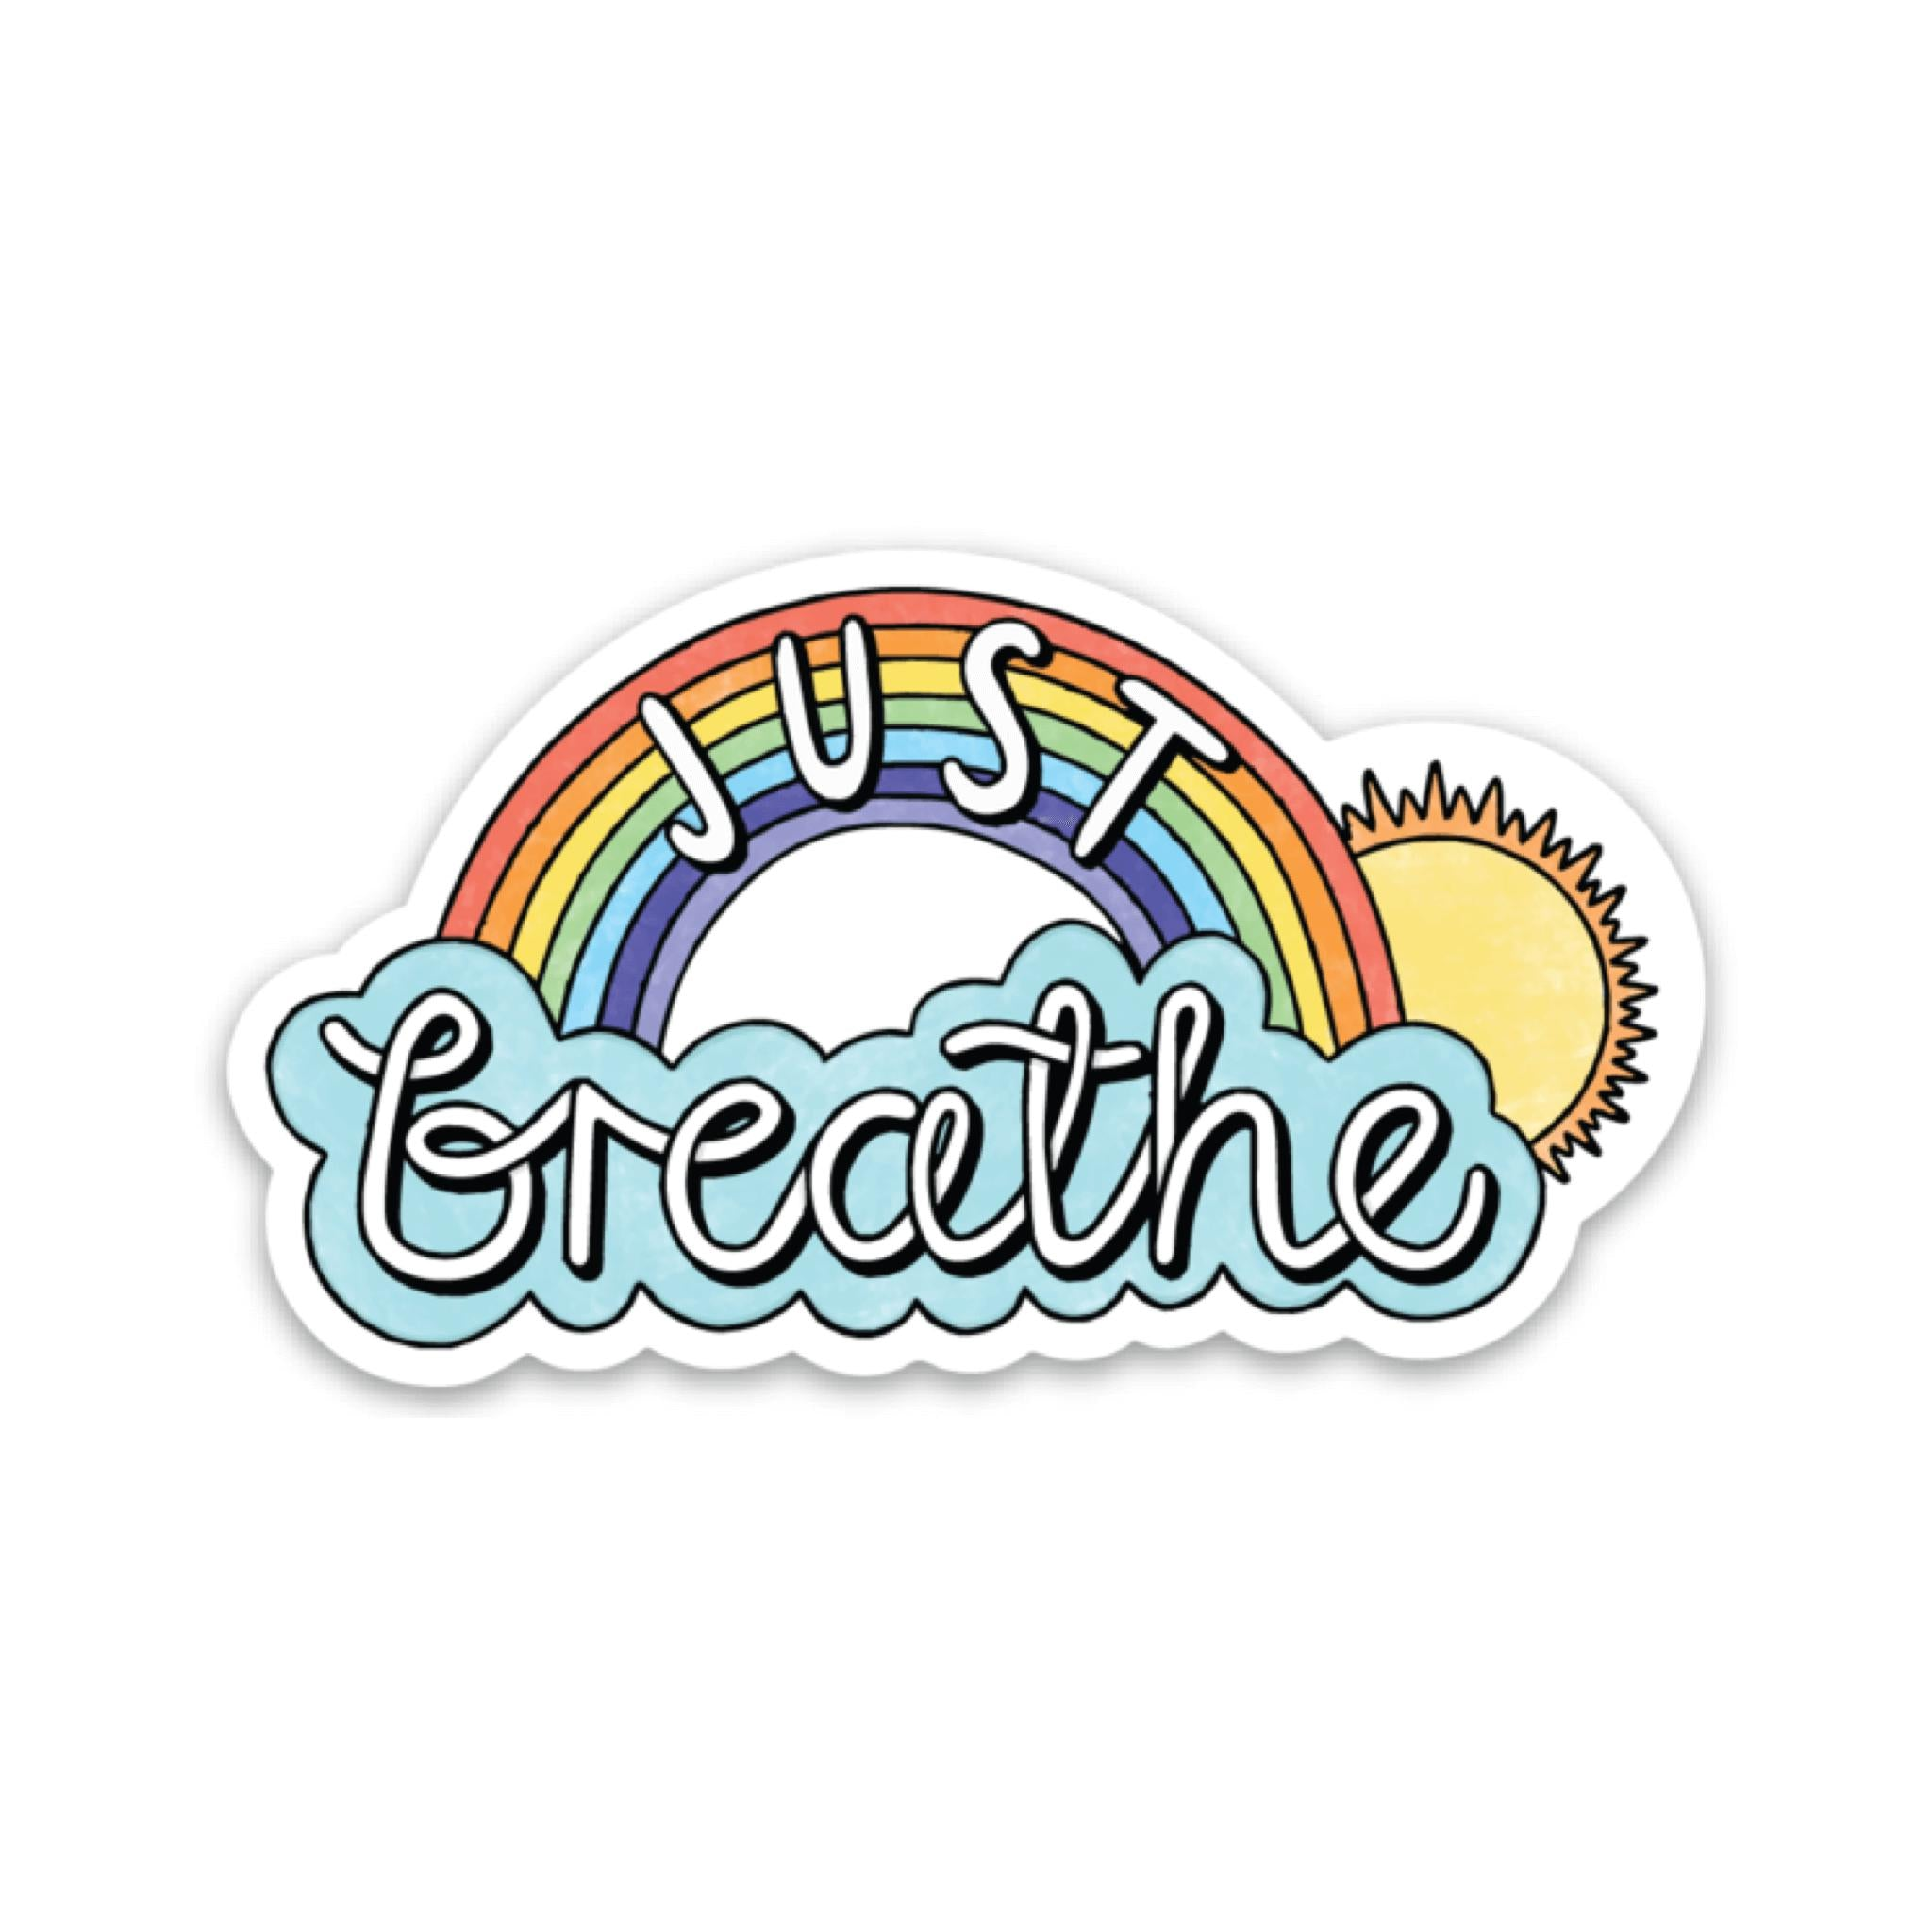 Just Breathe Sticker